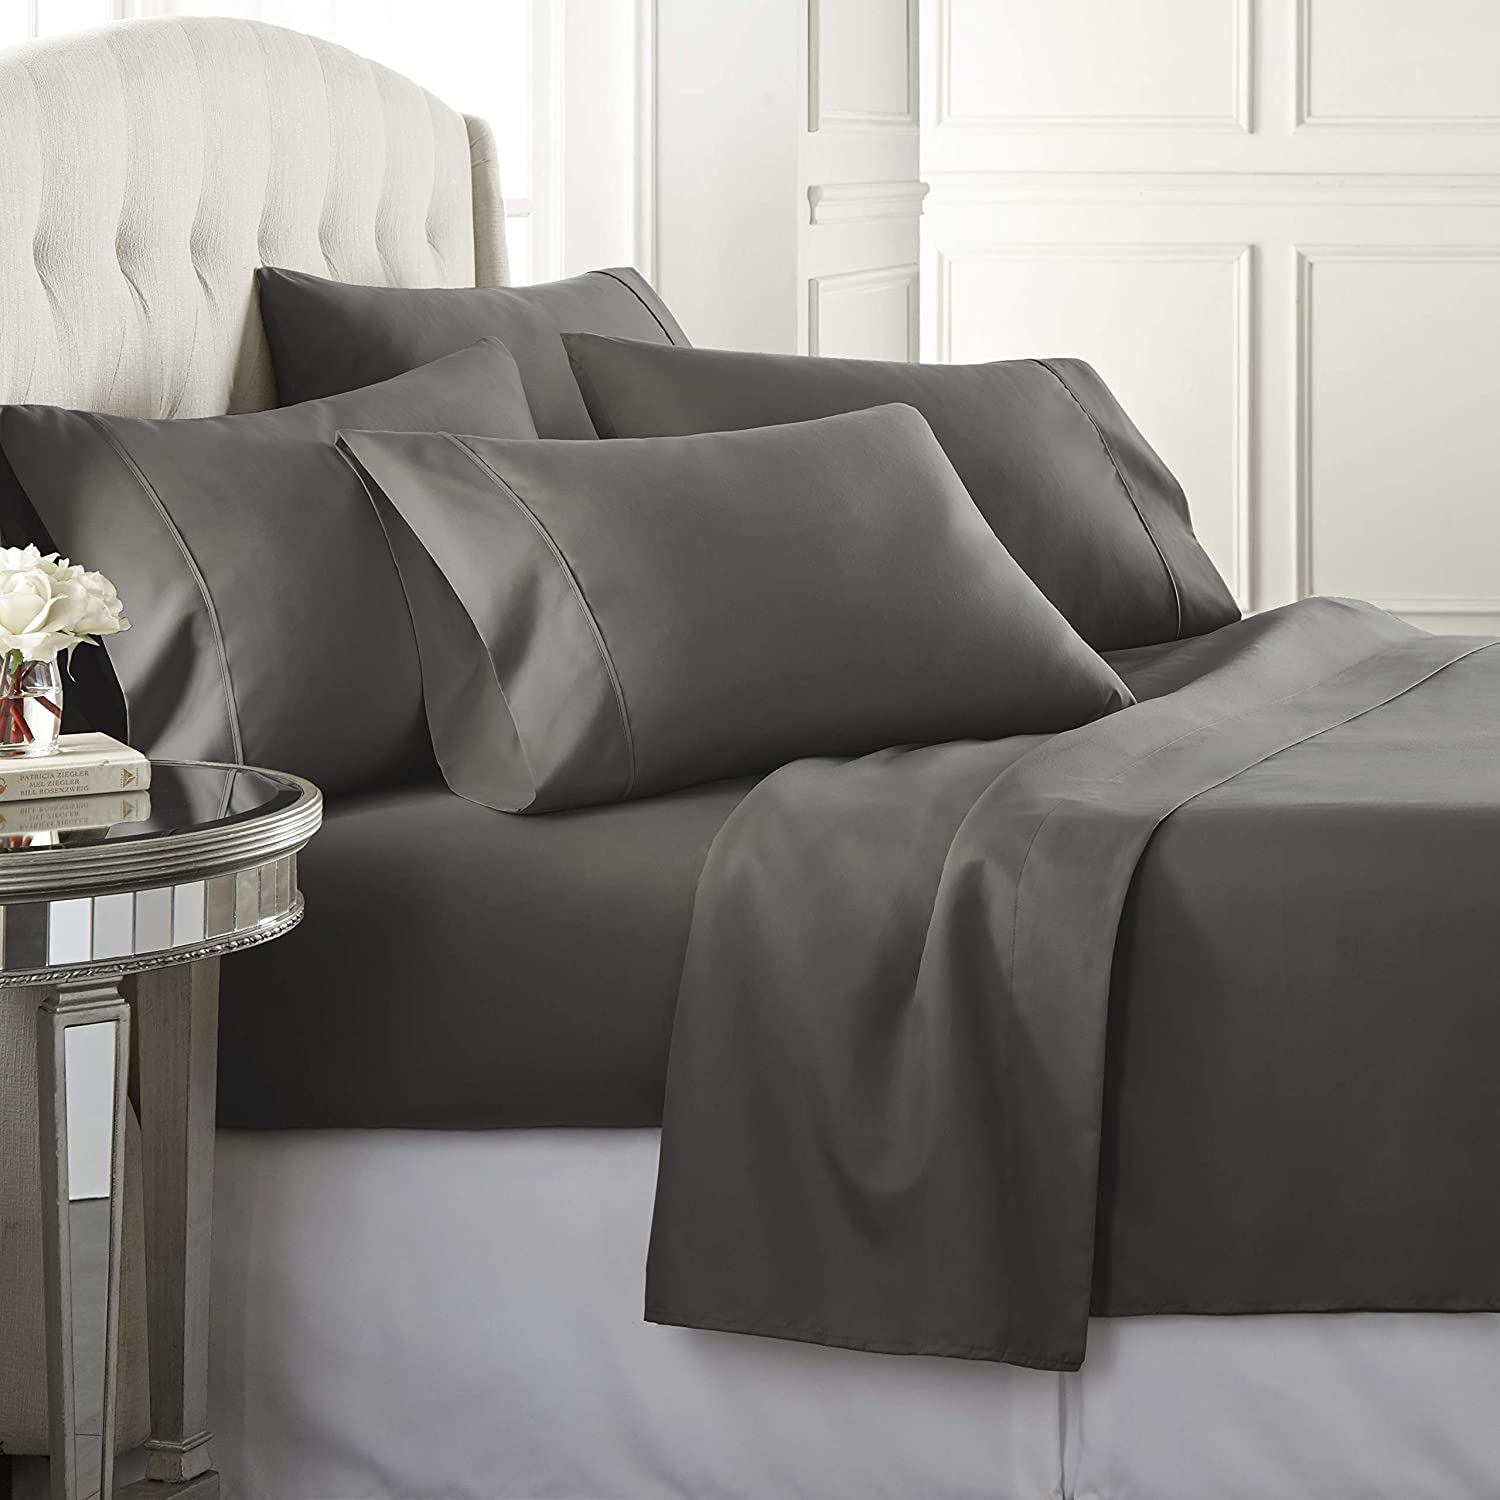 Same day Max 73% OFF shipping Danjor LinensQueenSize Bed Sheets 1800 - Set Series6